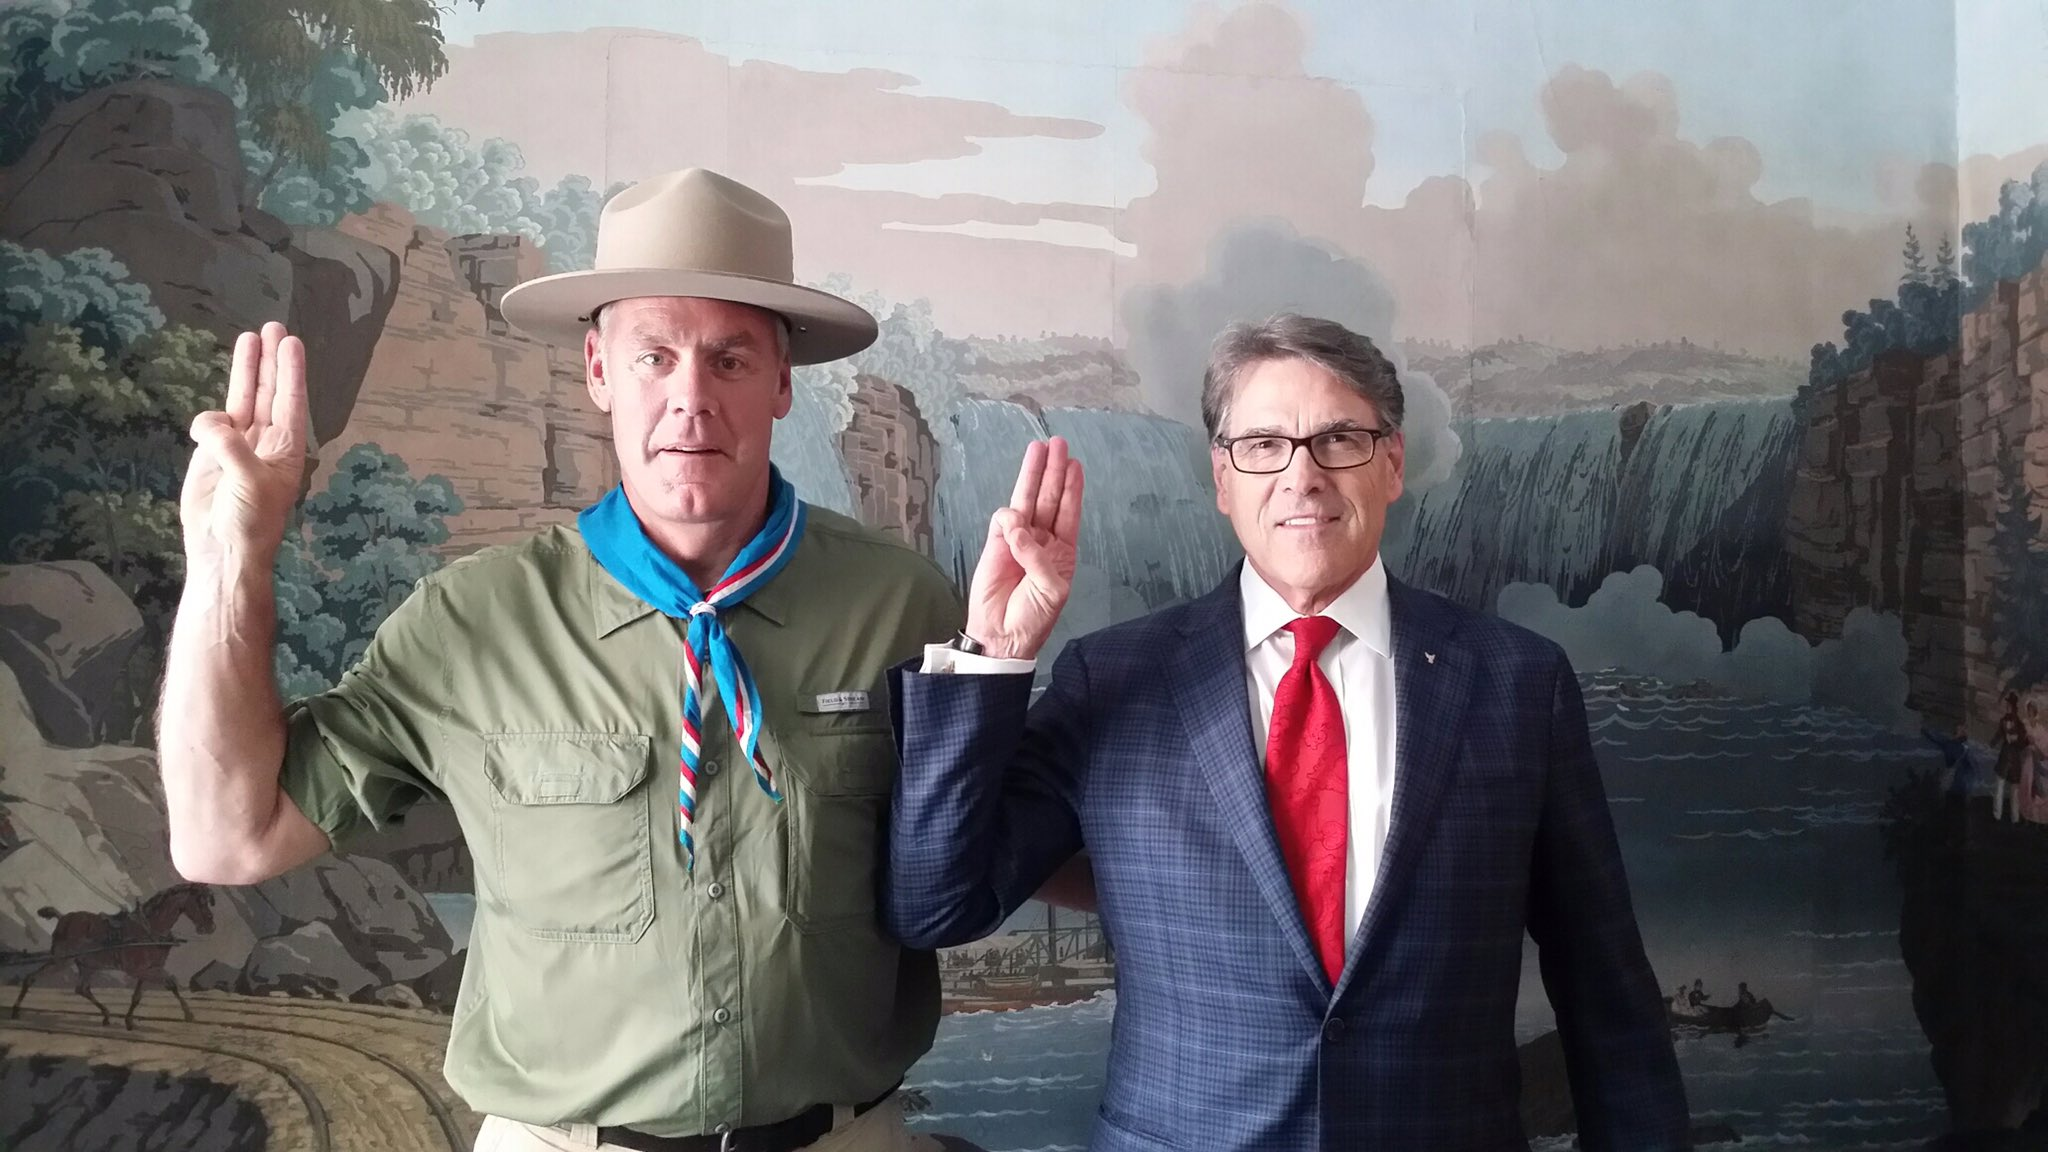 Ryan Zinke & Rick Perry / photo: Secretary Zinke twitter account